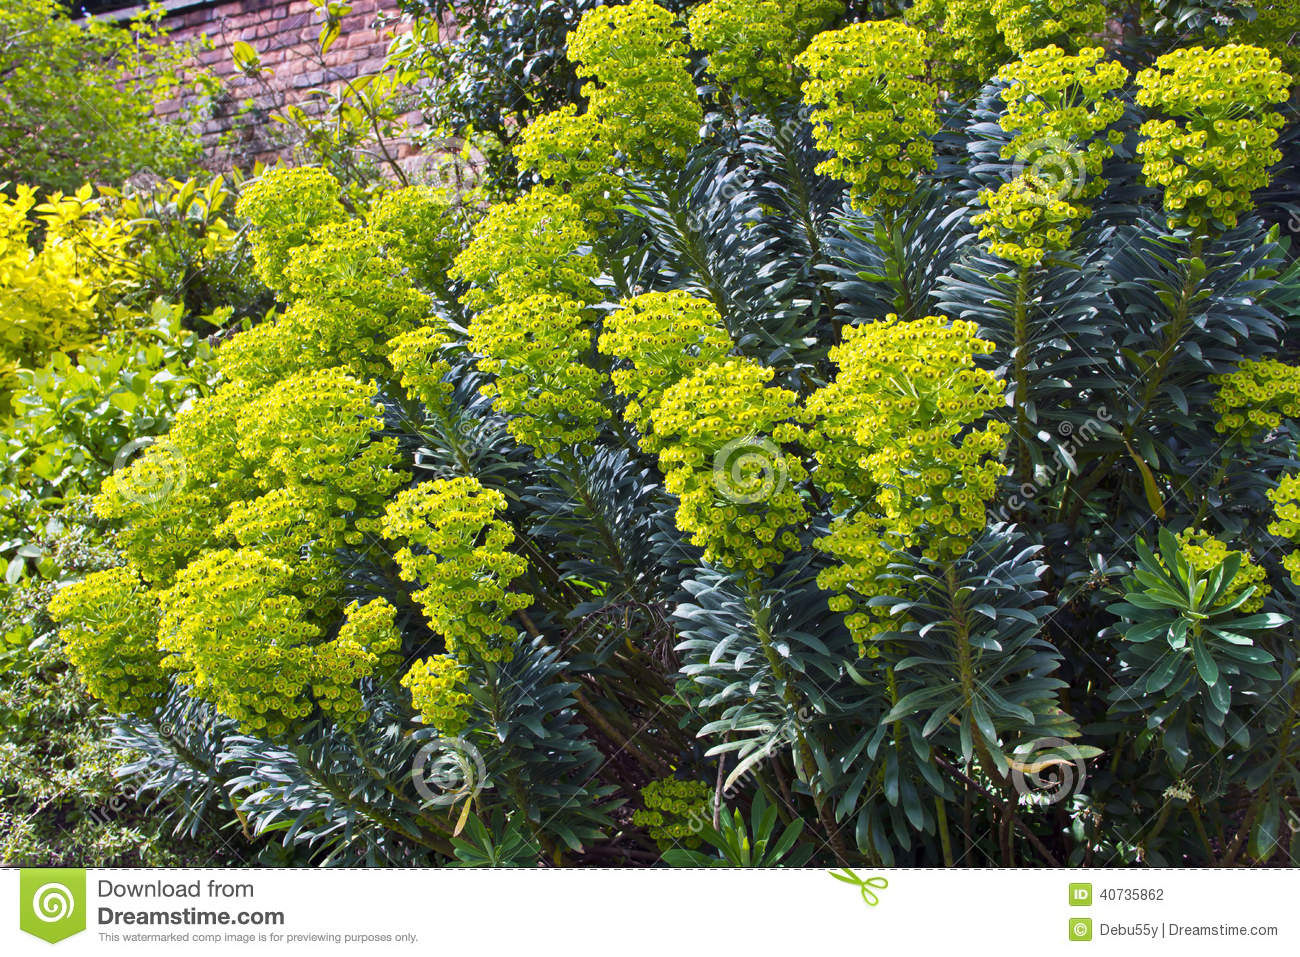 Euphorbia flowering plants in a garden stock photo for Flowering landscape plants